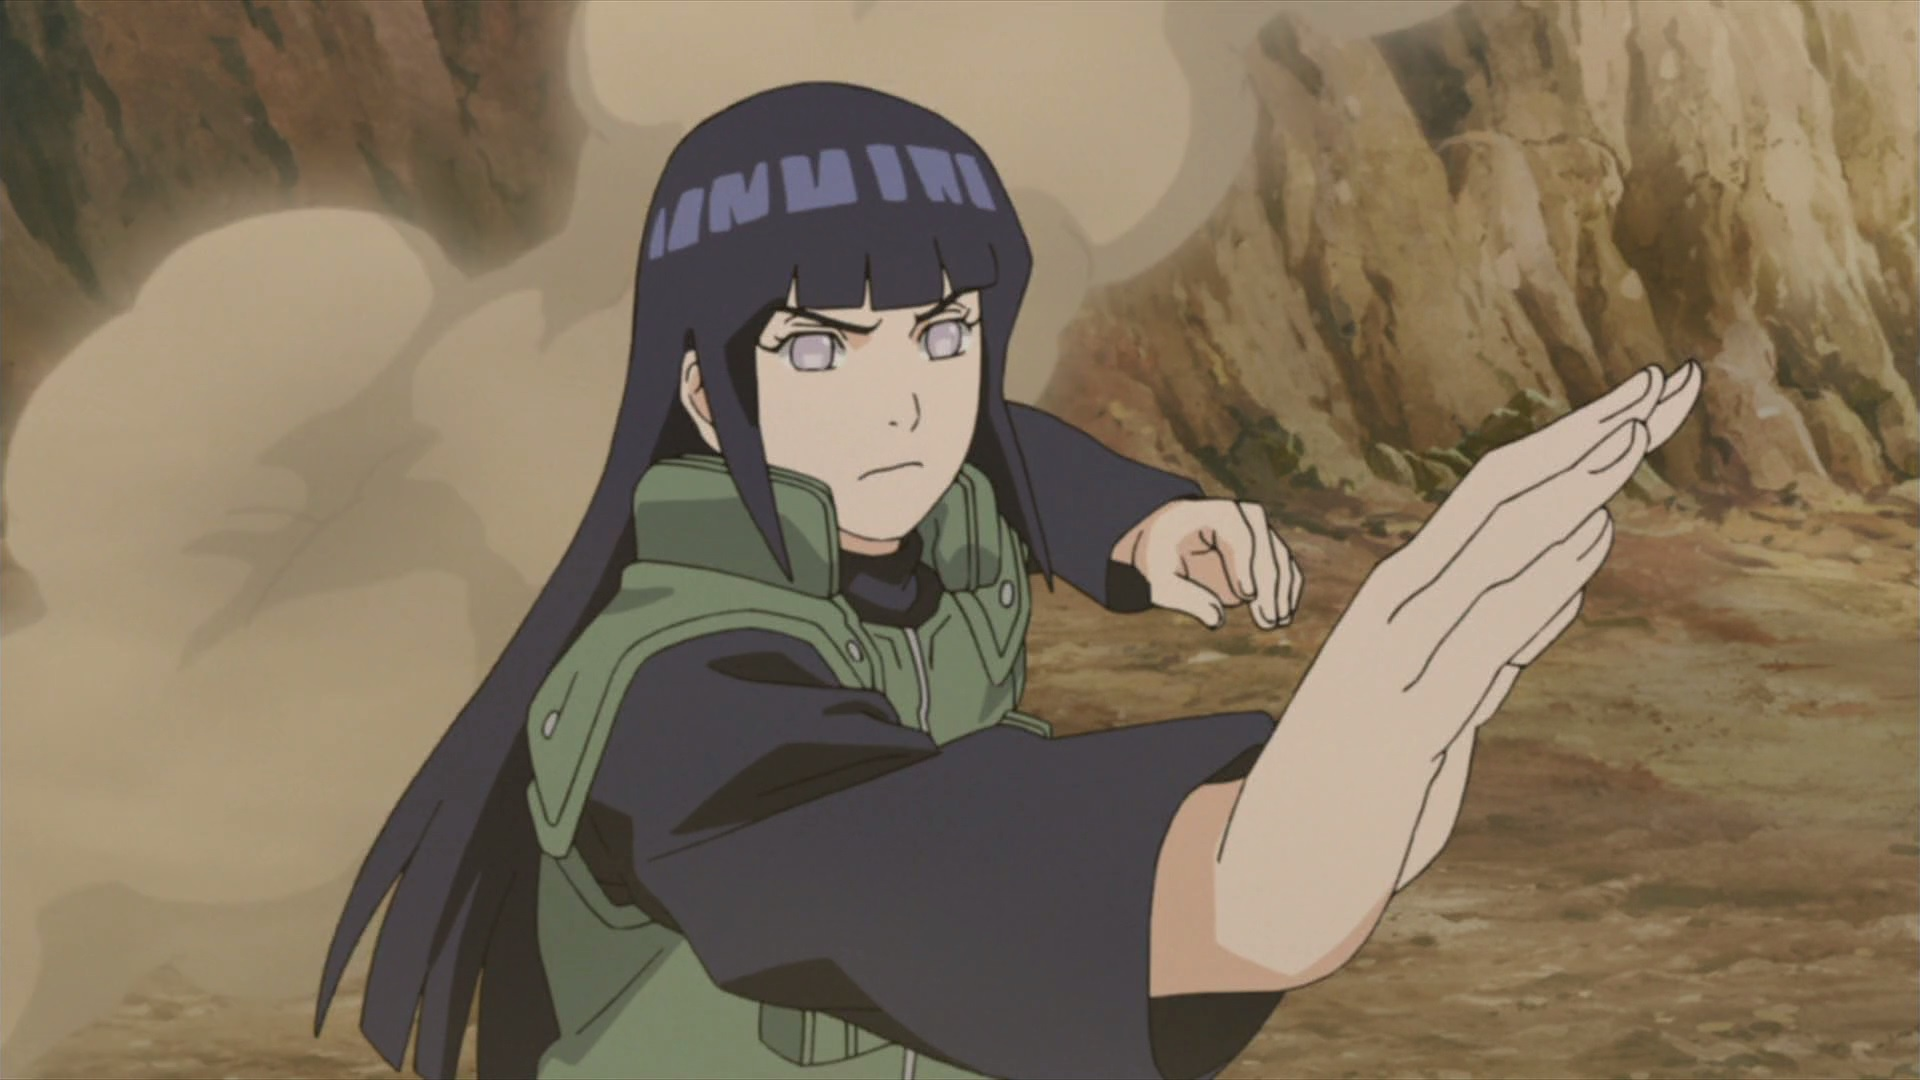 hinata dating naruto in shippu gakuen I dont read the manga but i was just wondering if naruto is dating anyone yet and if yes then who but just tell who cuz i dont want it all spoiled.